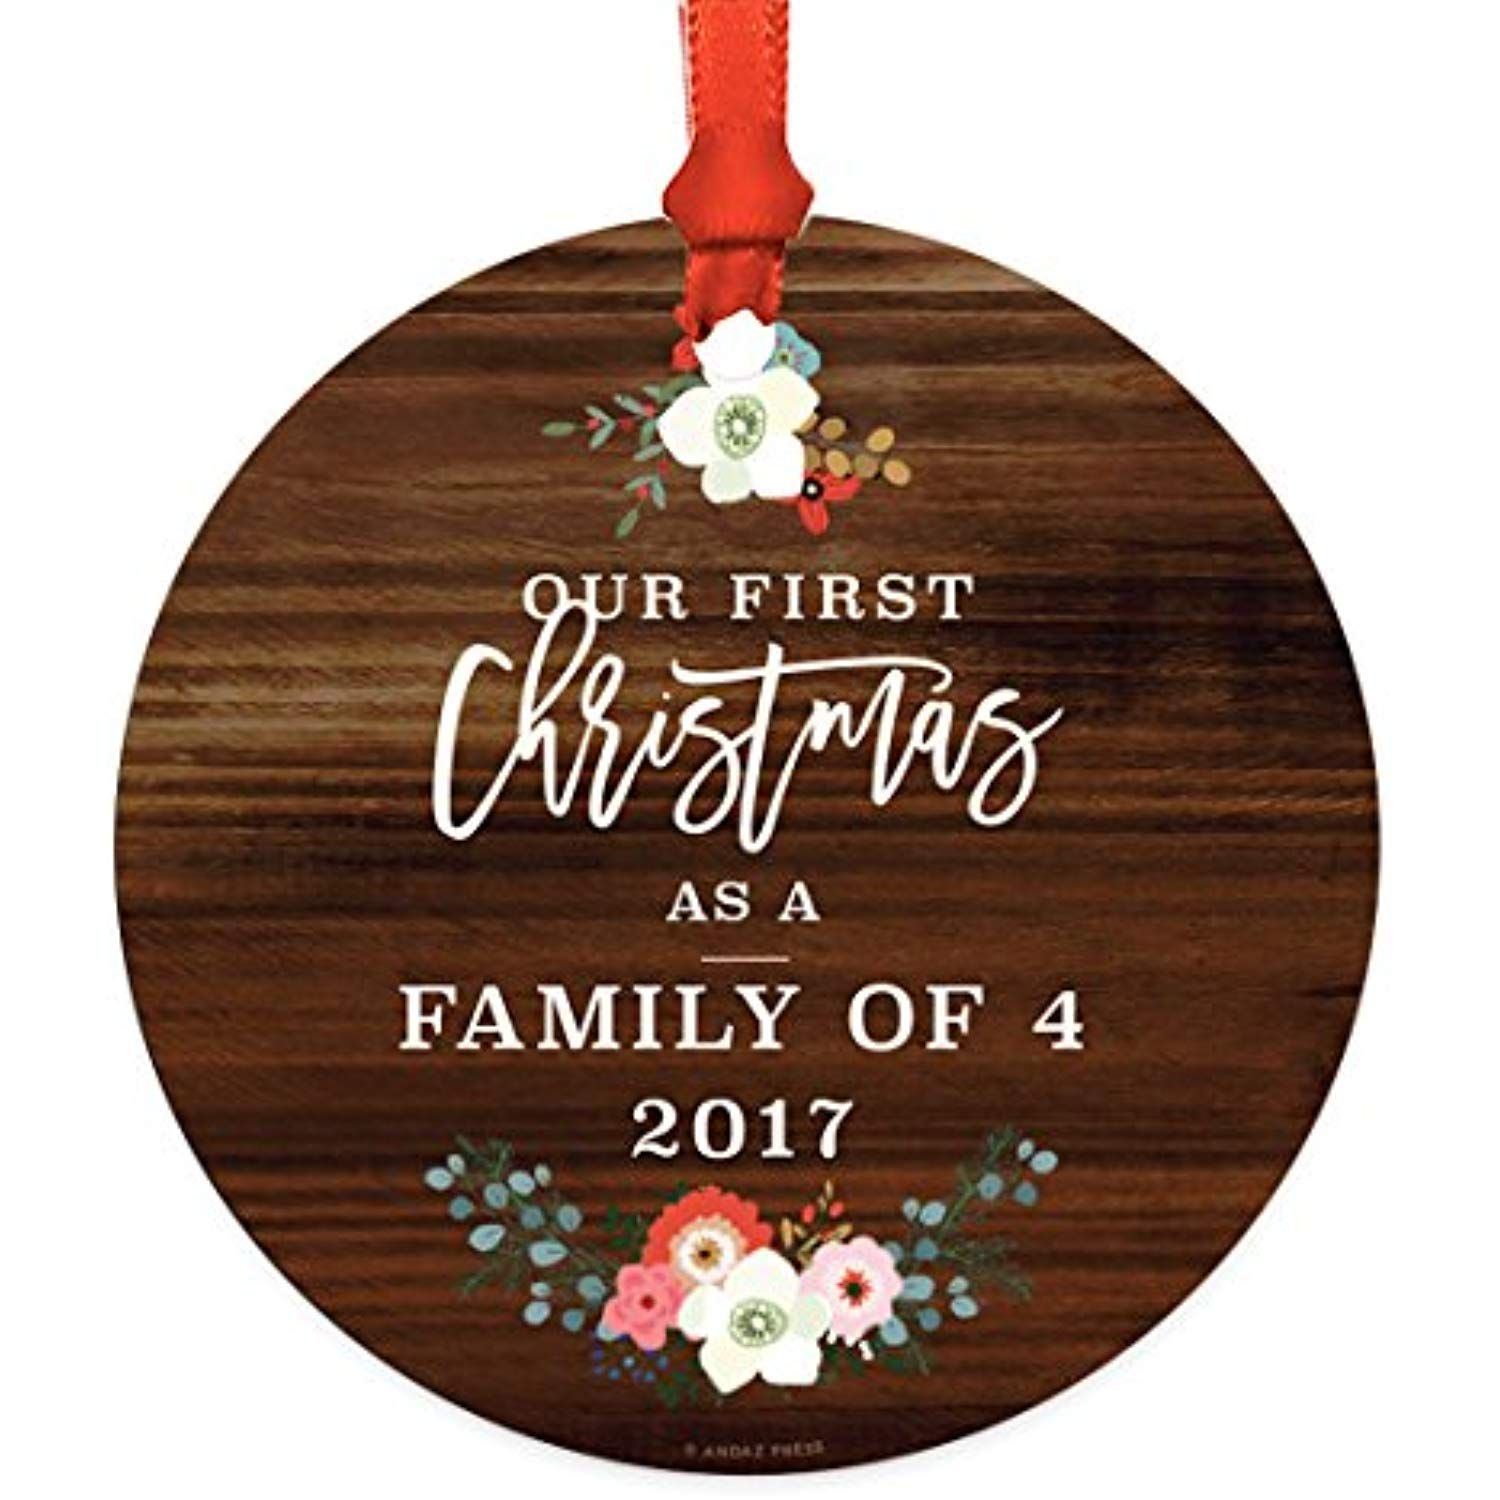 Andaz Press Family Metal Christmas Ornament, Our First Christmas As